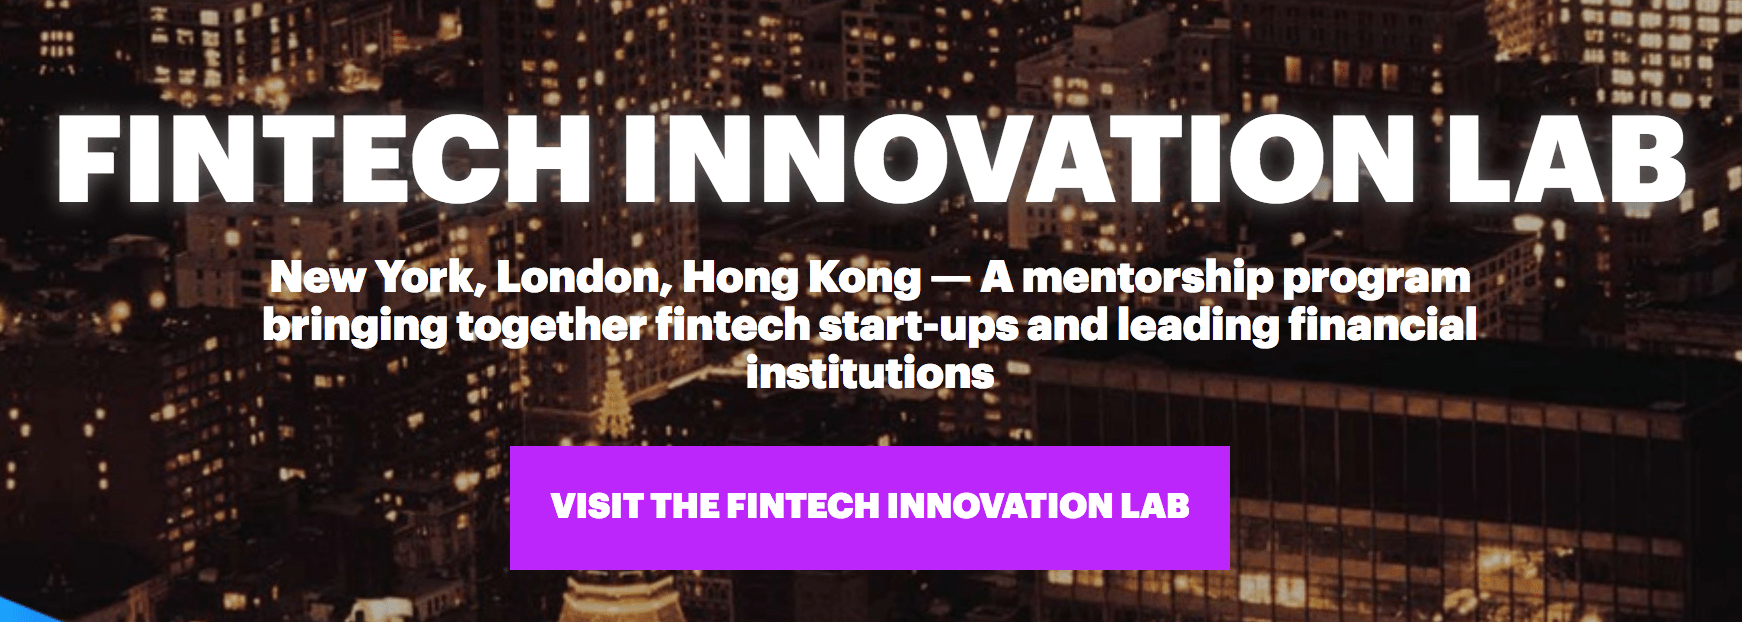 Cyberwrite Identified as Top 10 Insurtech by Accenture's Customers in the NY Fintech Innovation Lab